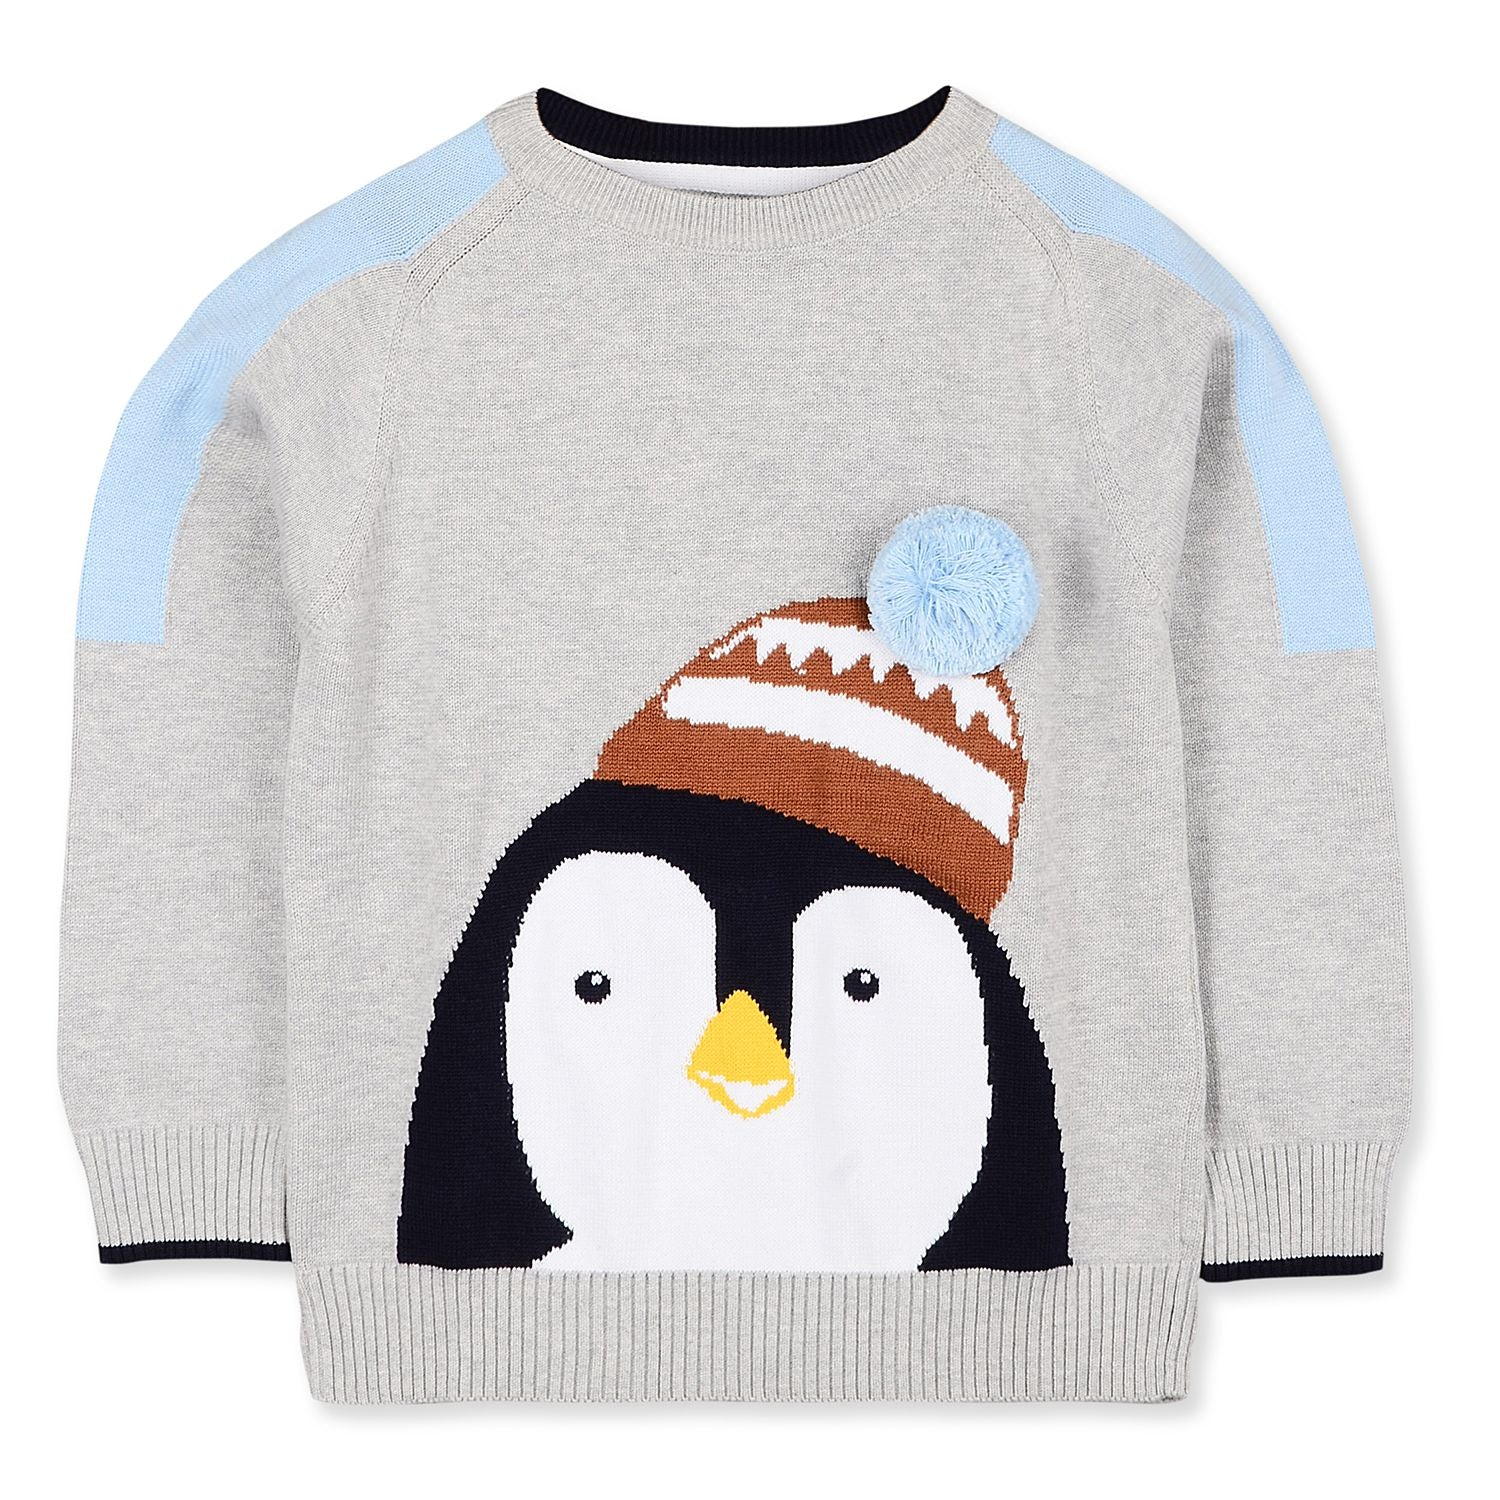 Striking Penguin Sweater for kids